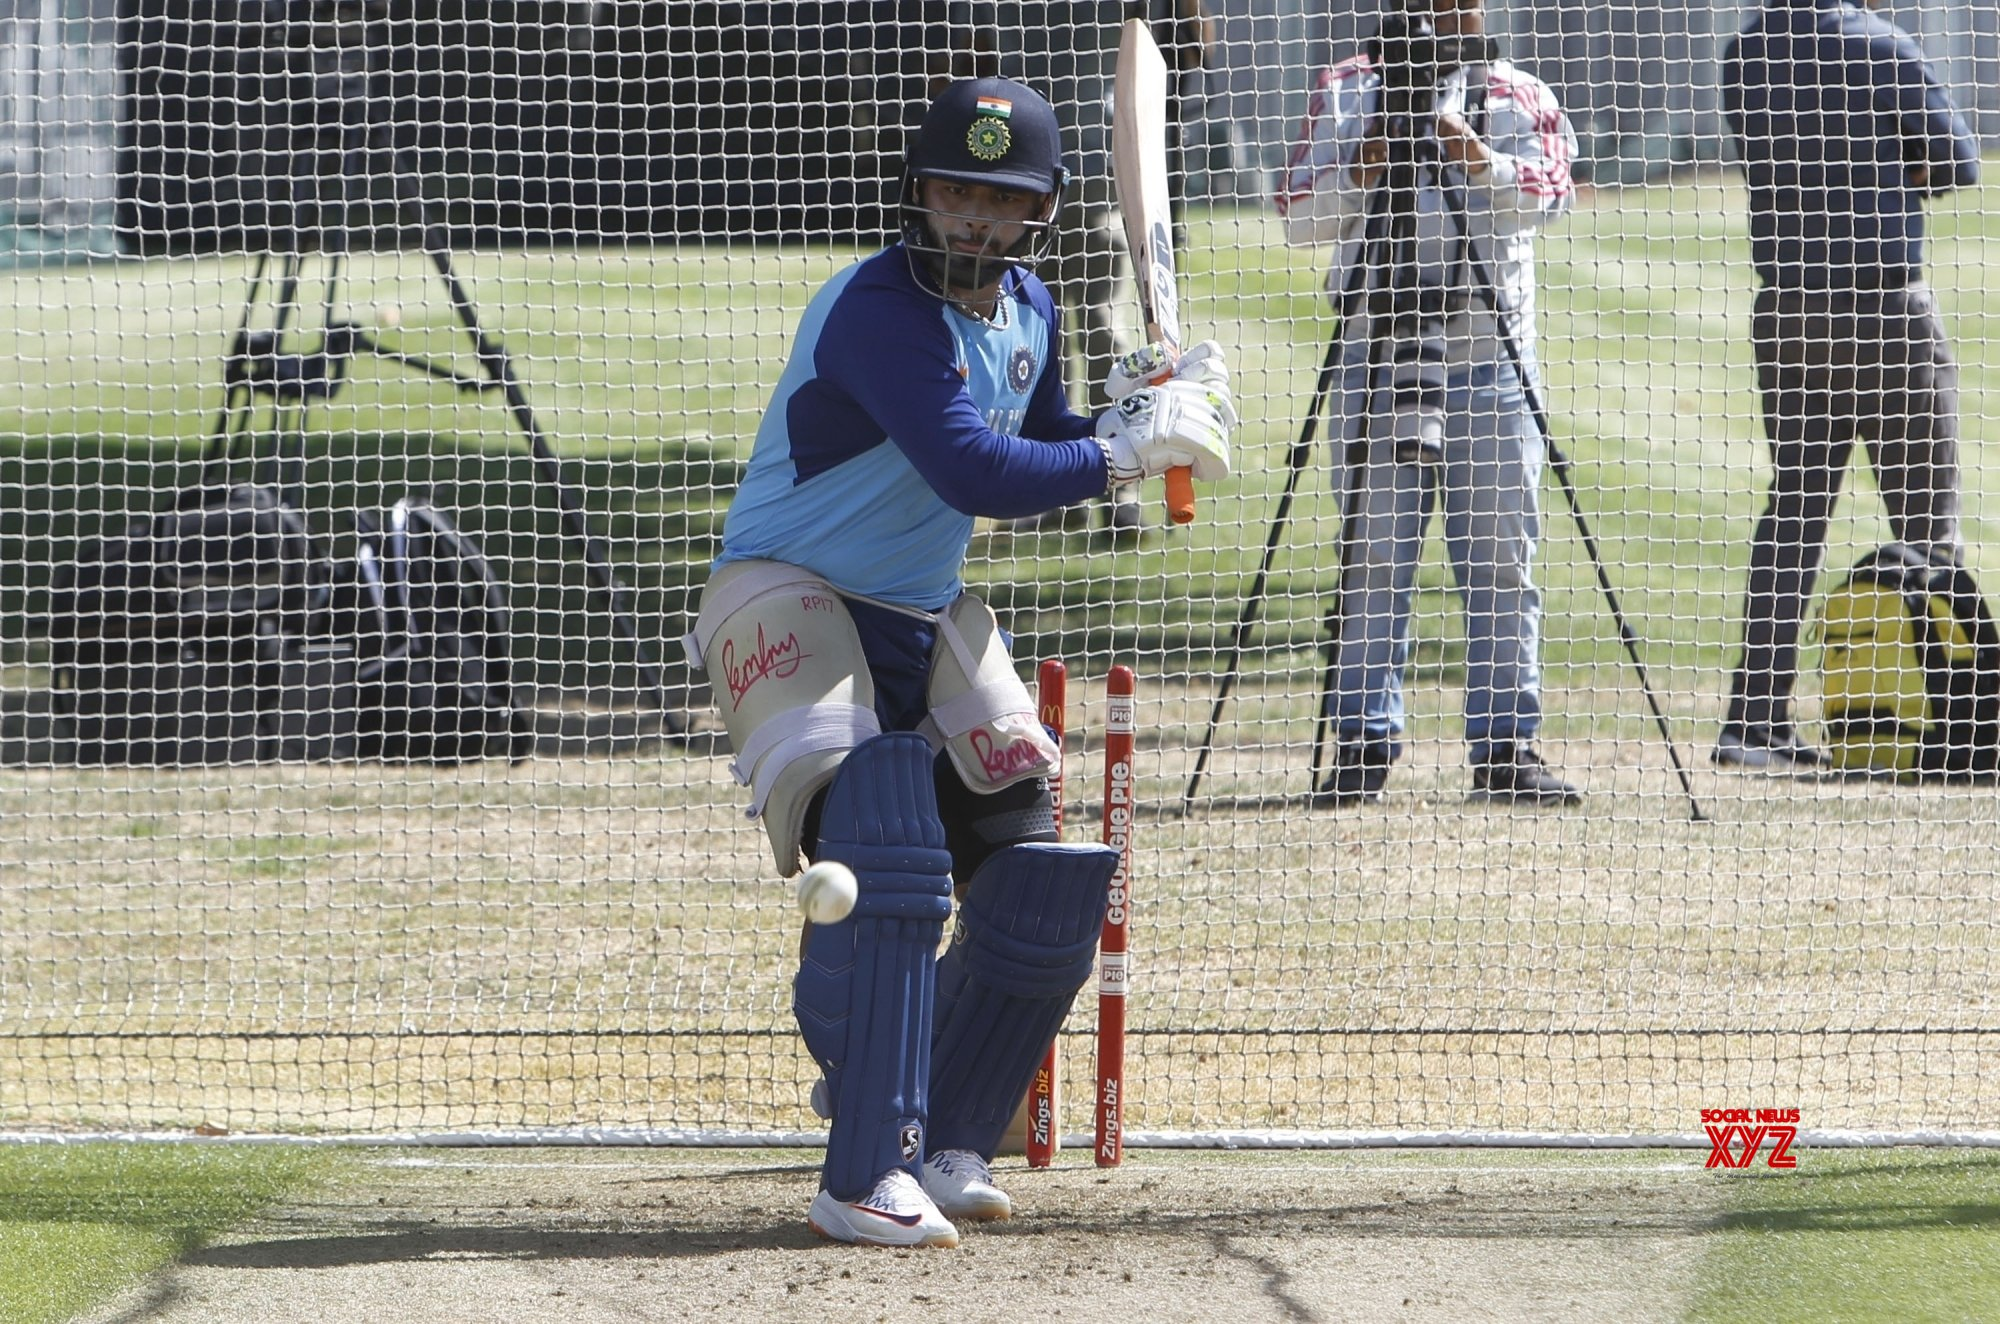 Auckland: India Vs New Zealand - 2nd ODI - India practice session #Gallery